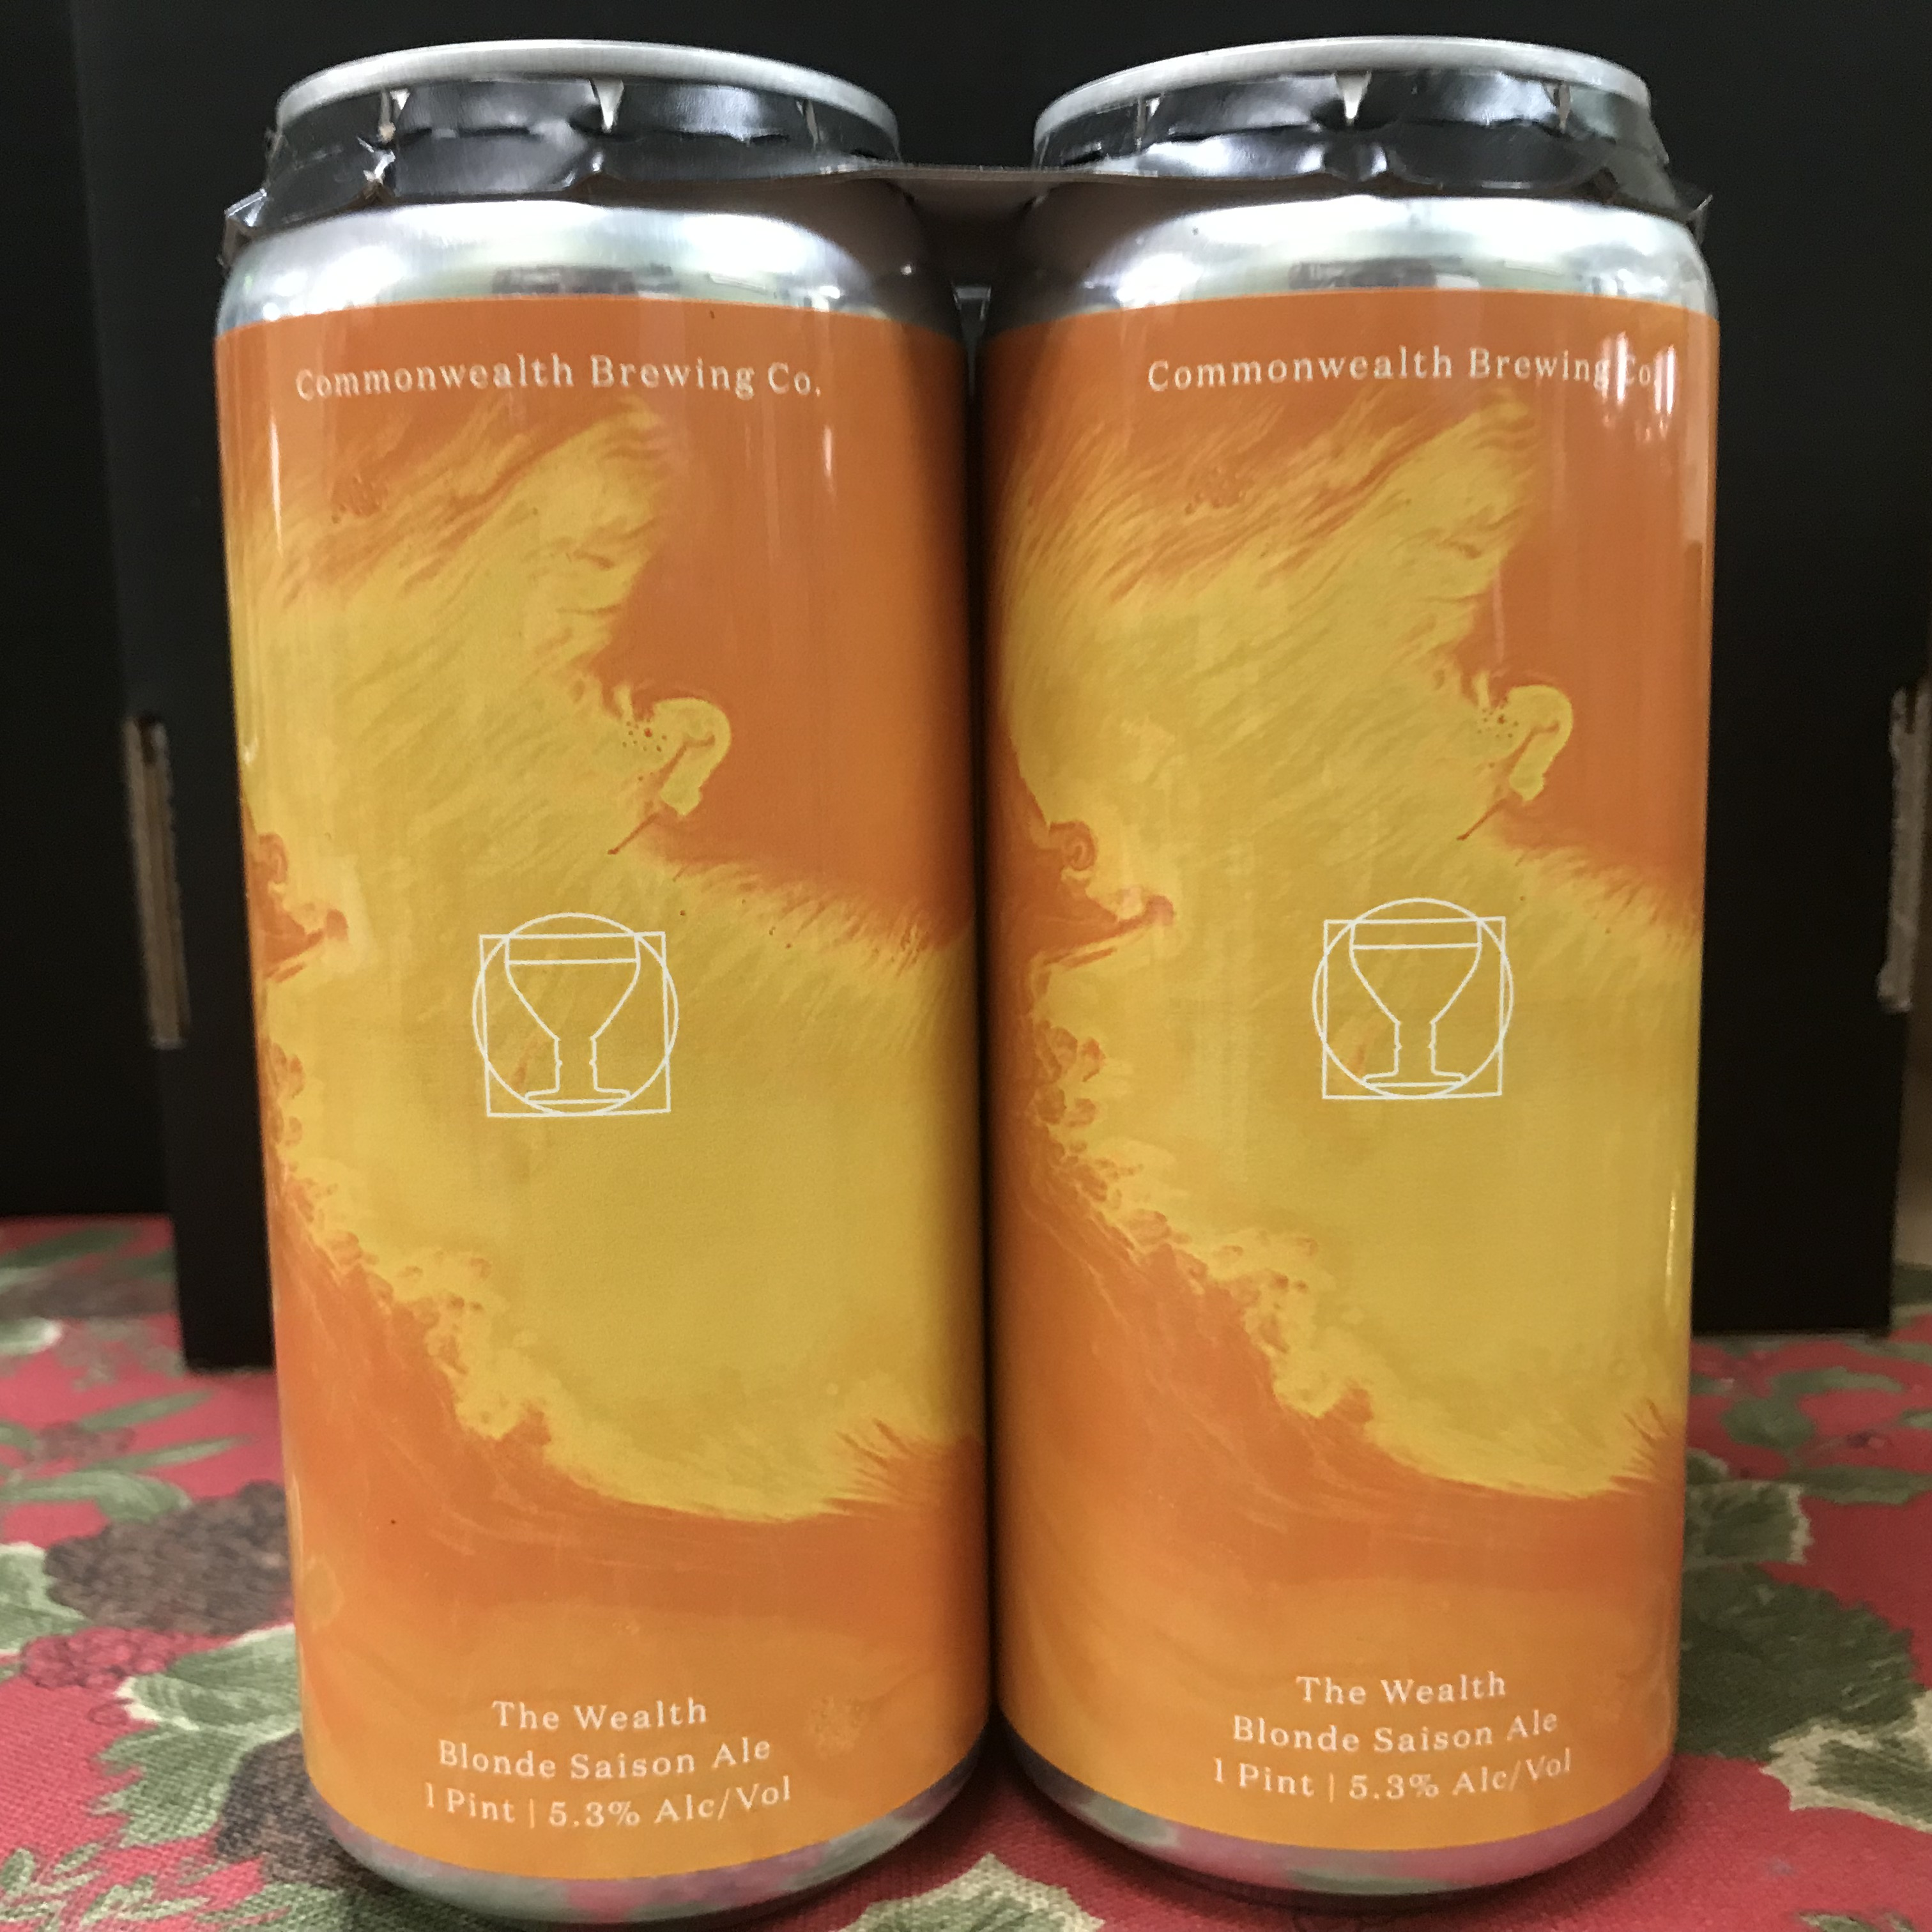 Commonweath Brewing The Wealth Blonde Saison Ale 4 x 1 pint cans